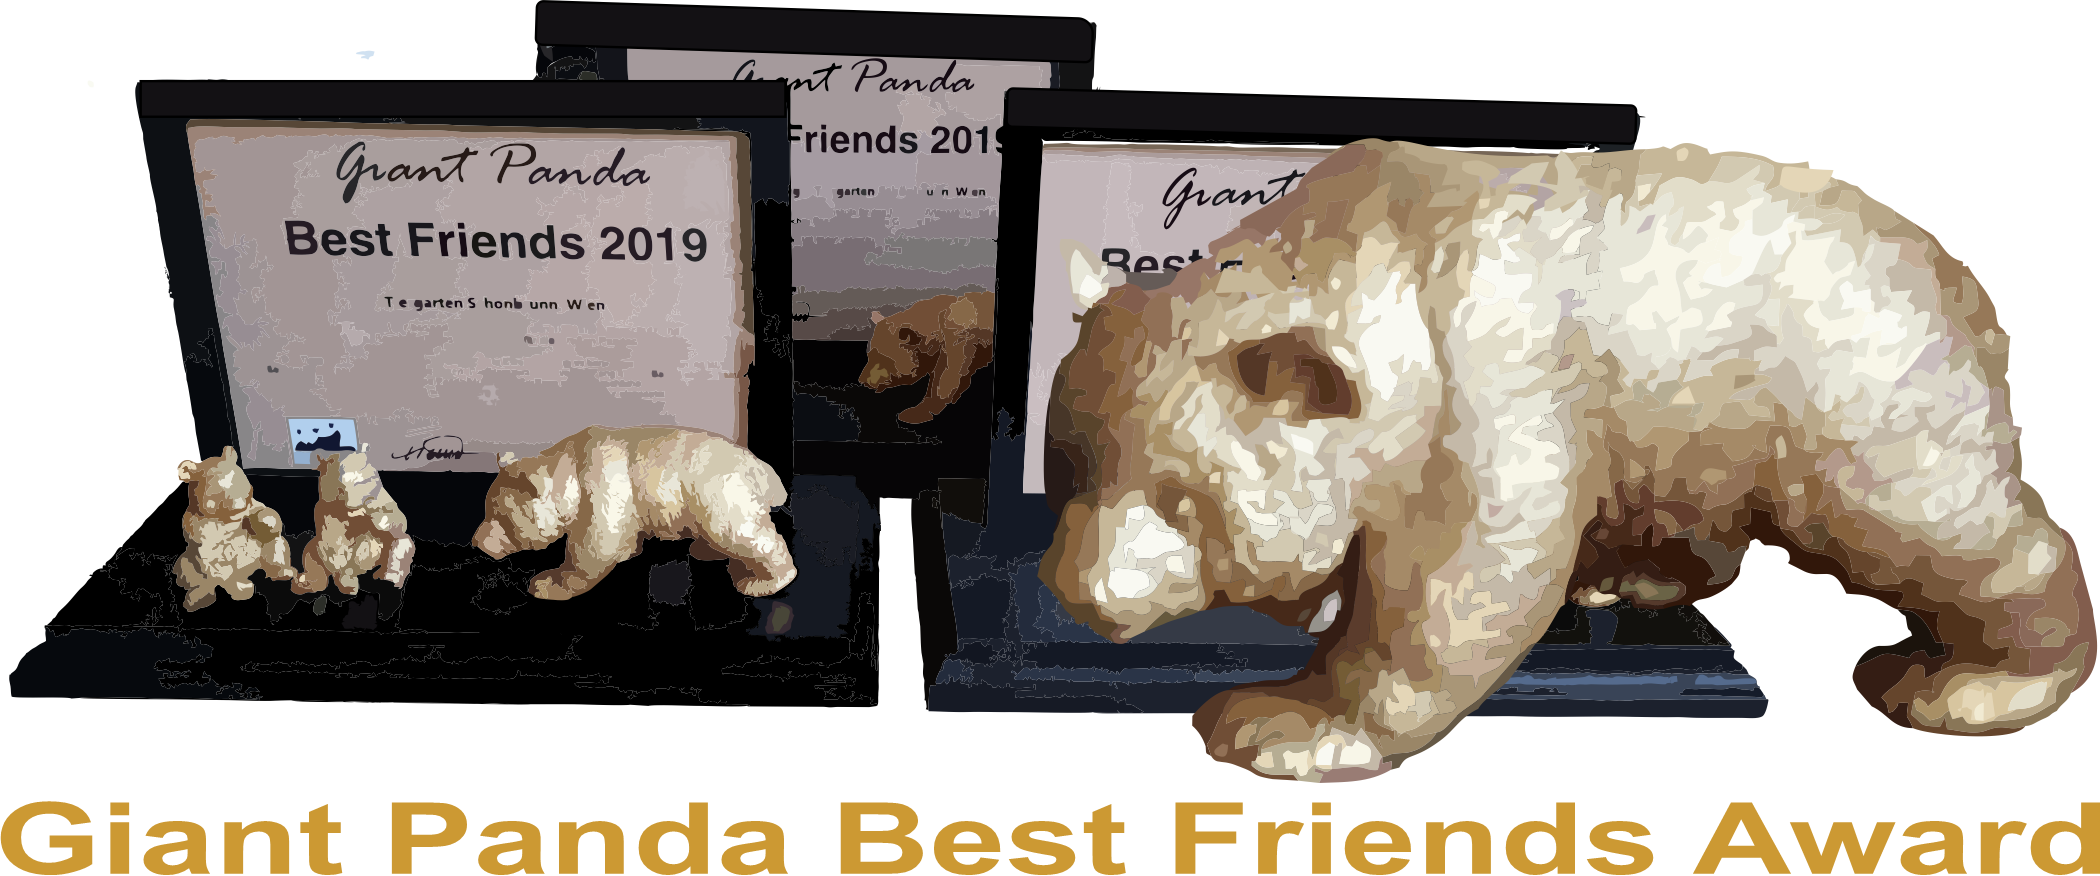 Giant Panda Best Friends Award